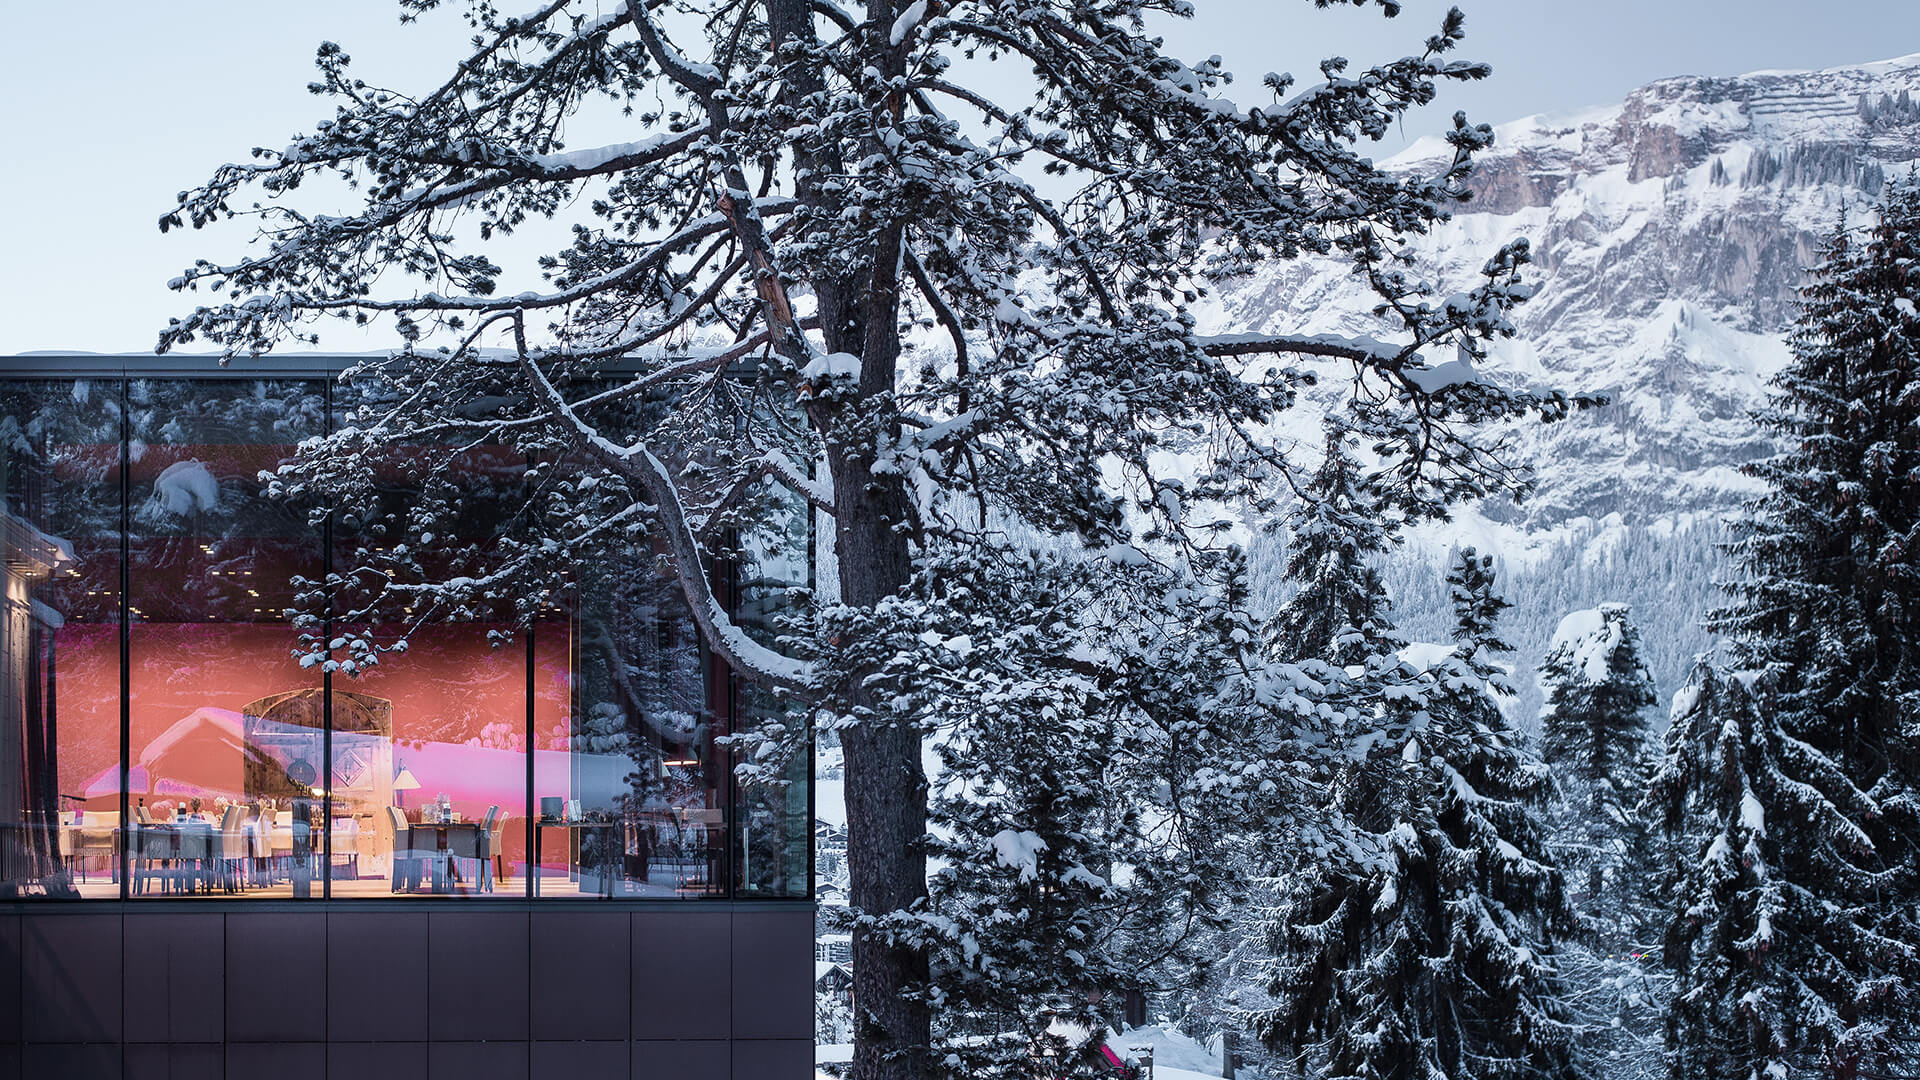 Beautiful Epoca restaurant exterior surrounded by snow cover trees and mountains under a blue sky